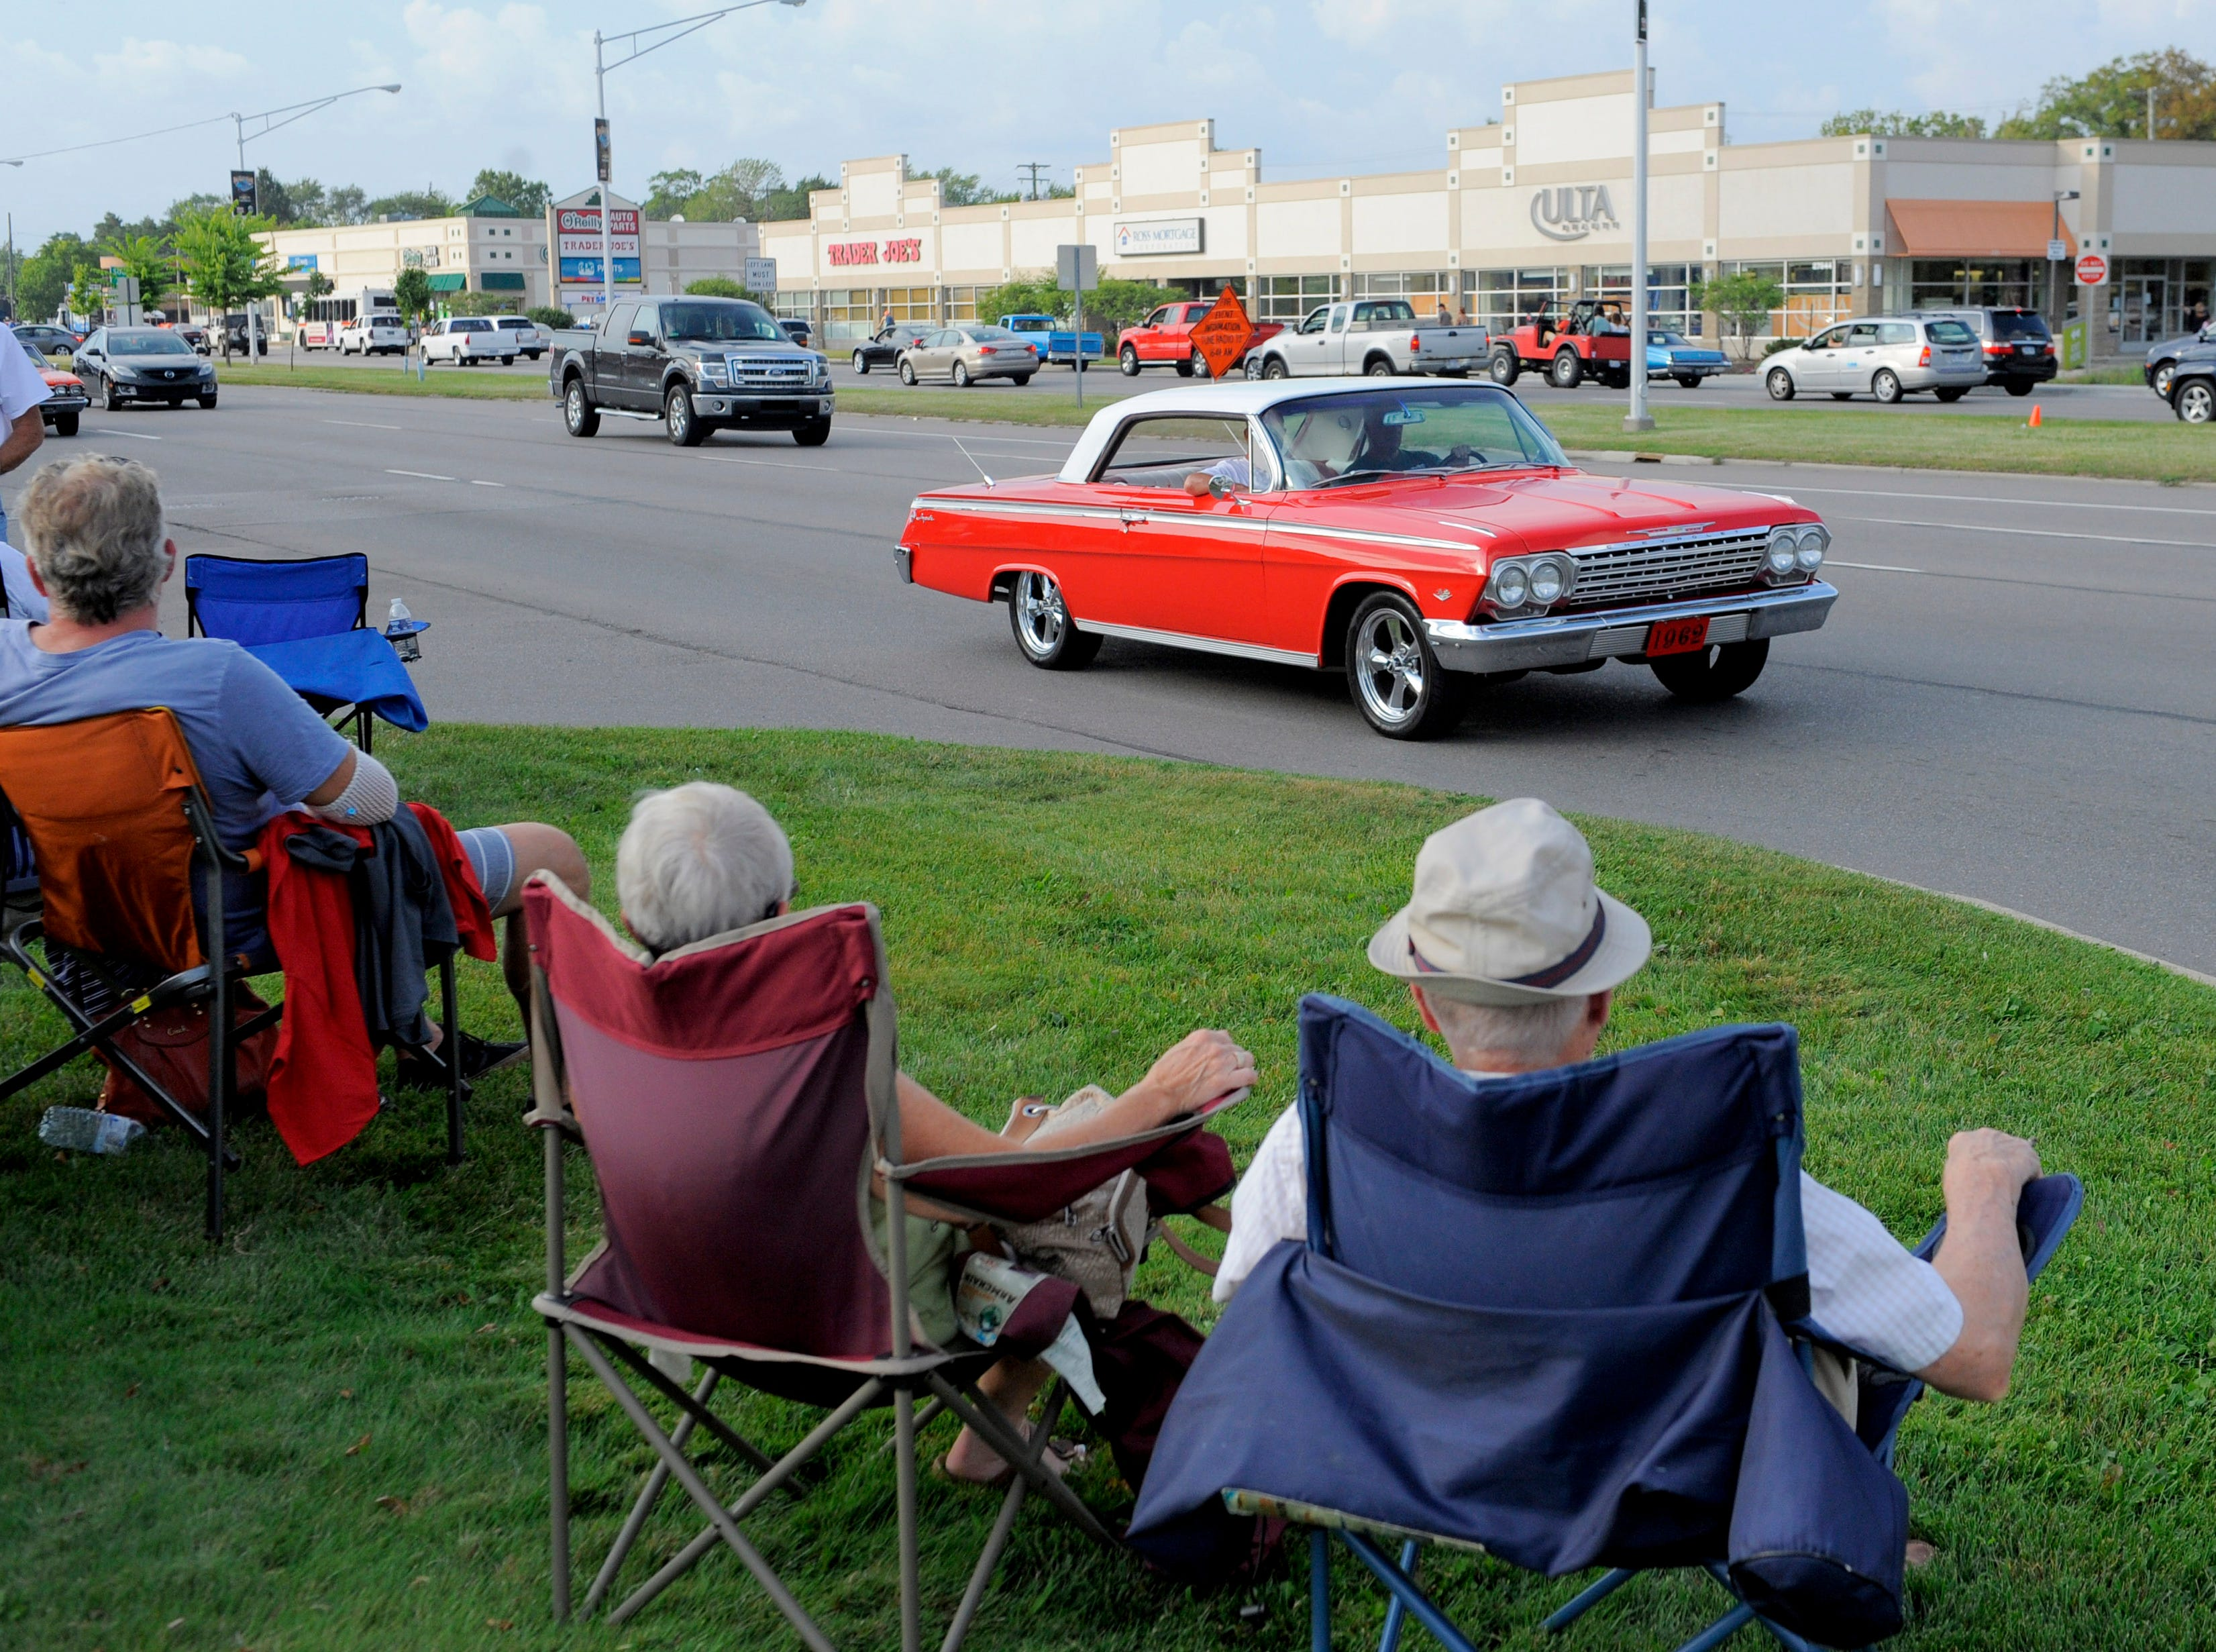 A 1962 Chevrolet Impala passes by several spectators, Friday Aug. 14, 2015, on Woodward near 11 Mile in Royal Oak.